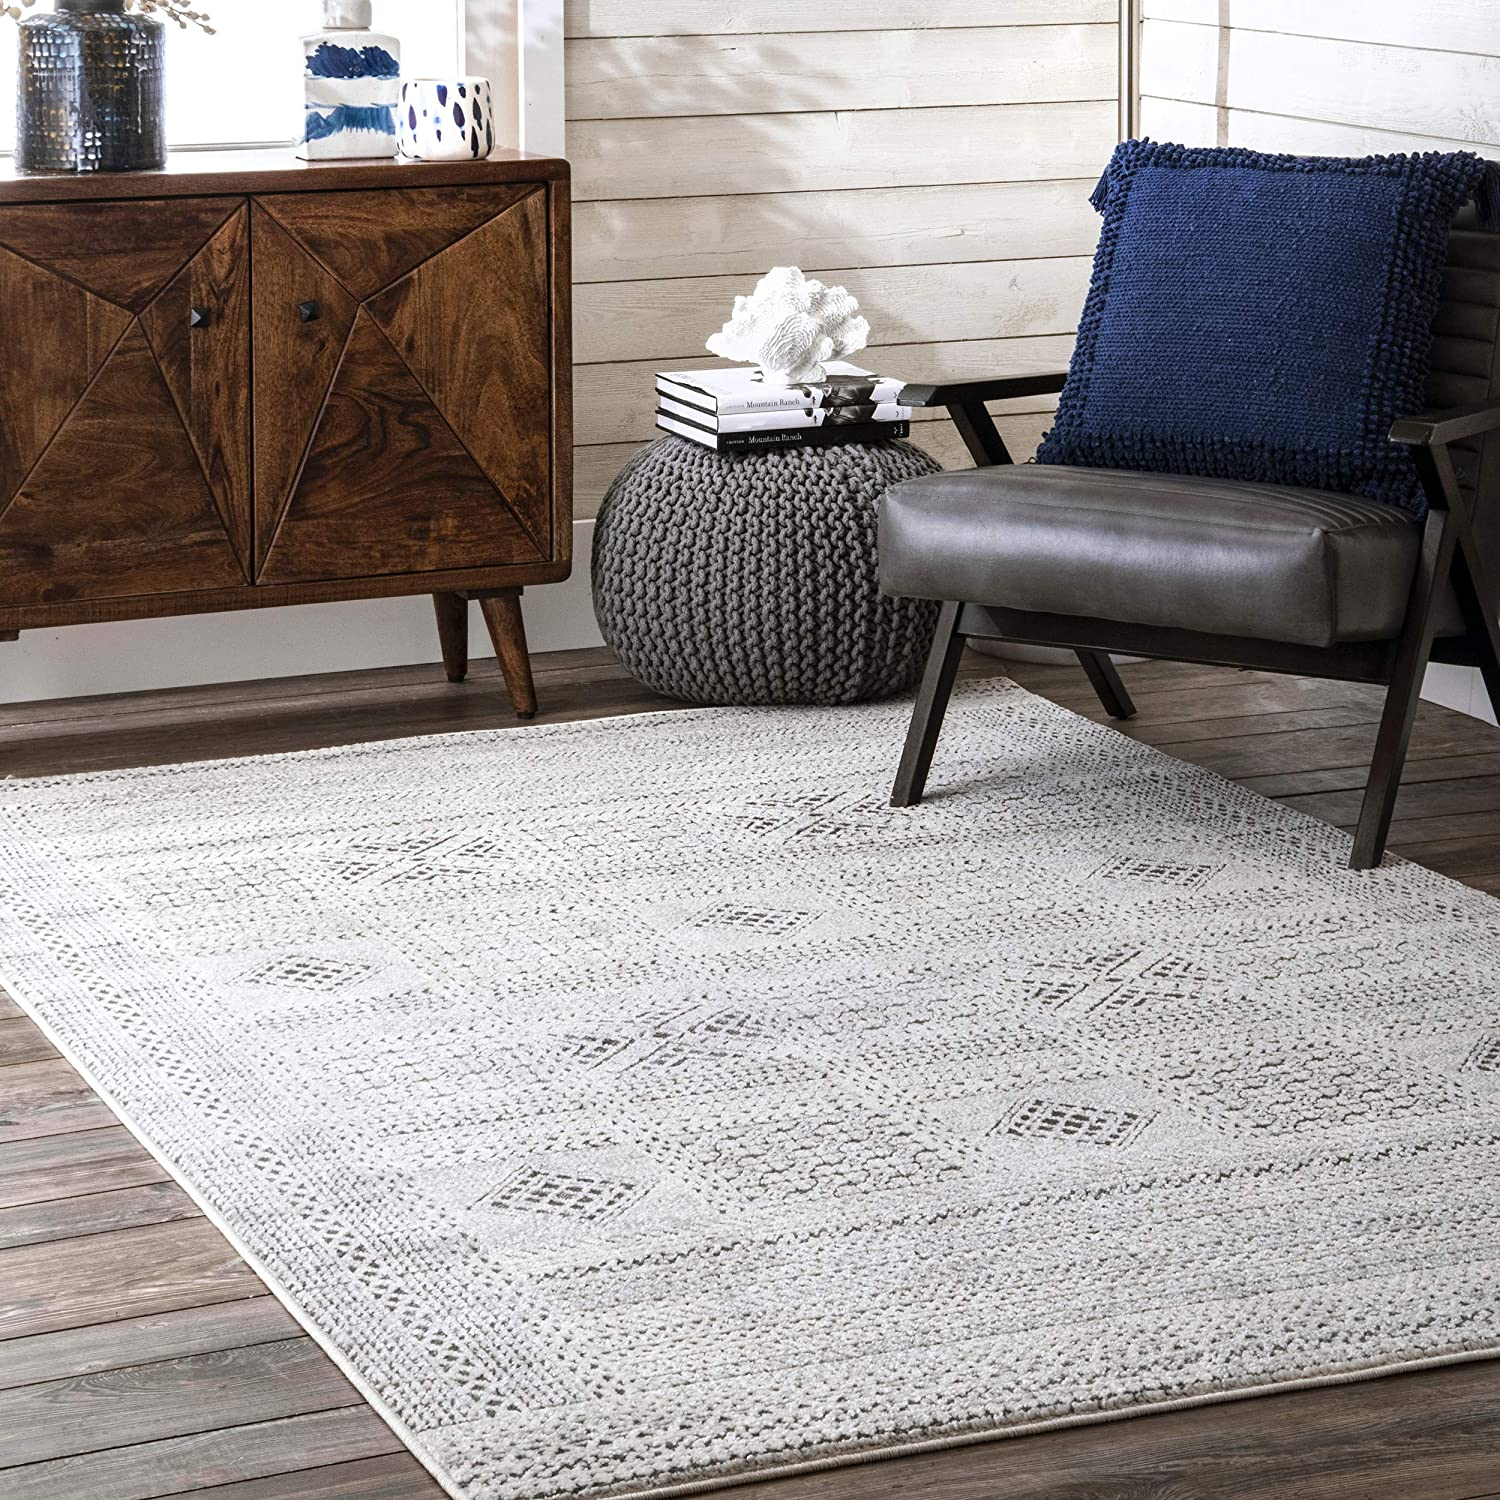 nuLOOM Blake Textured Patchwork Area Shipping included Large-scale sale Rug Grey 9' x 7